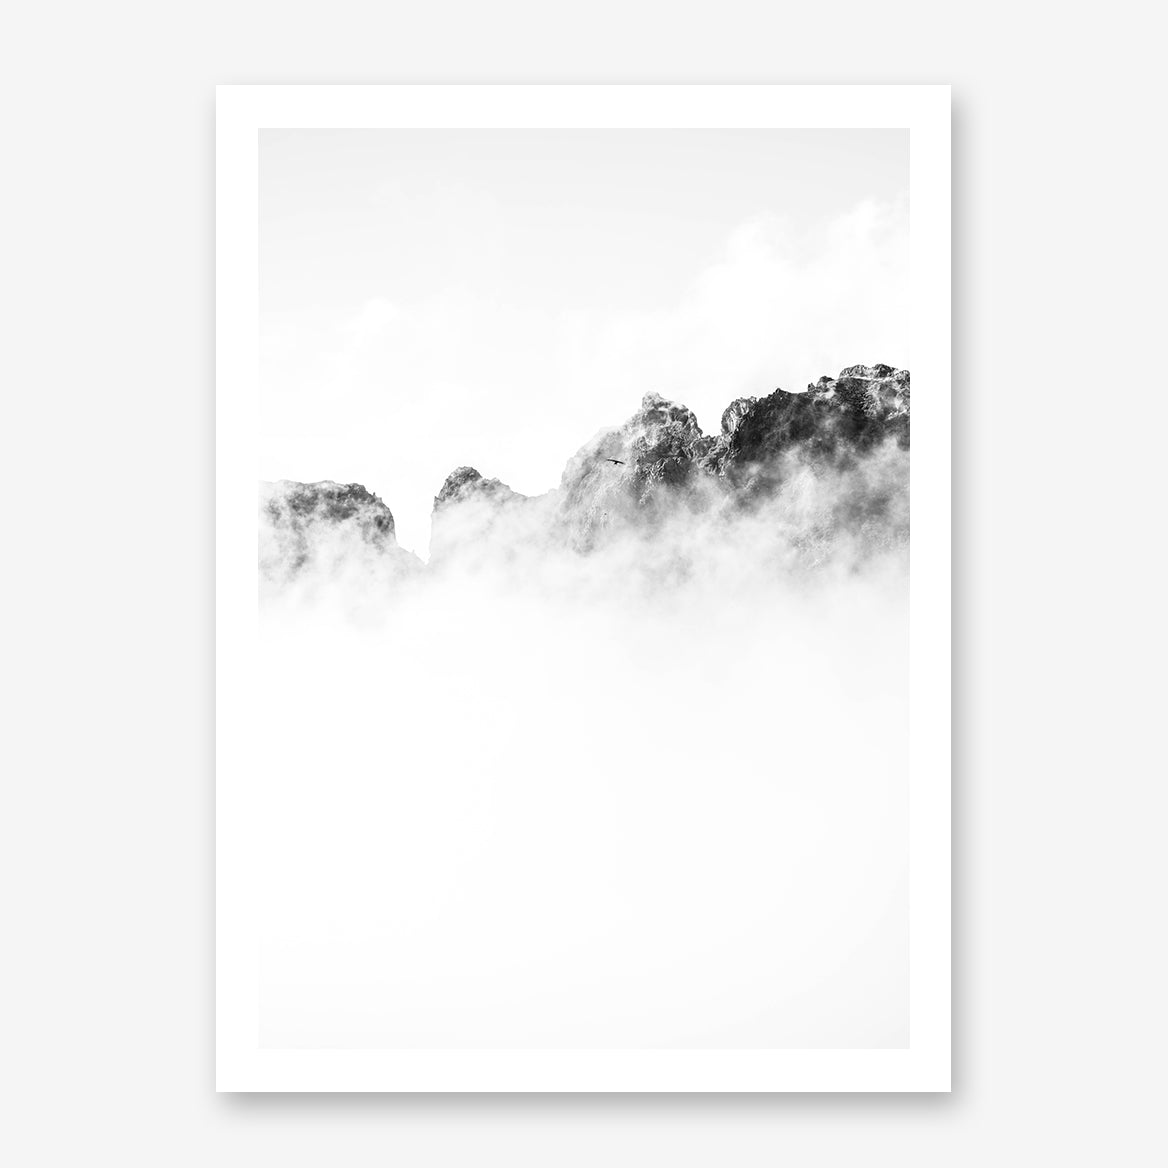 Black and white photo poster print with a bird flying over cloudy mountains